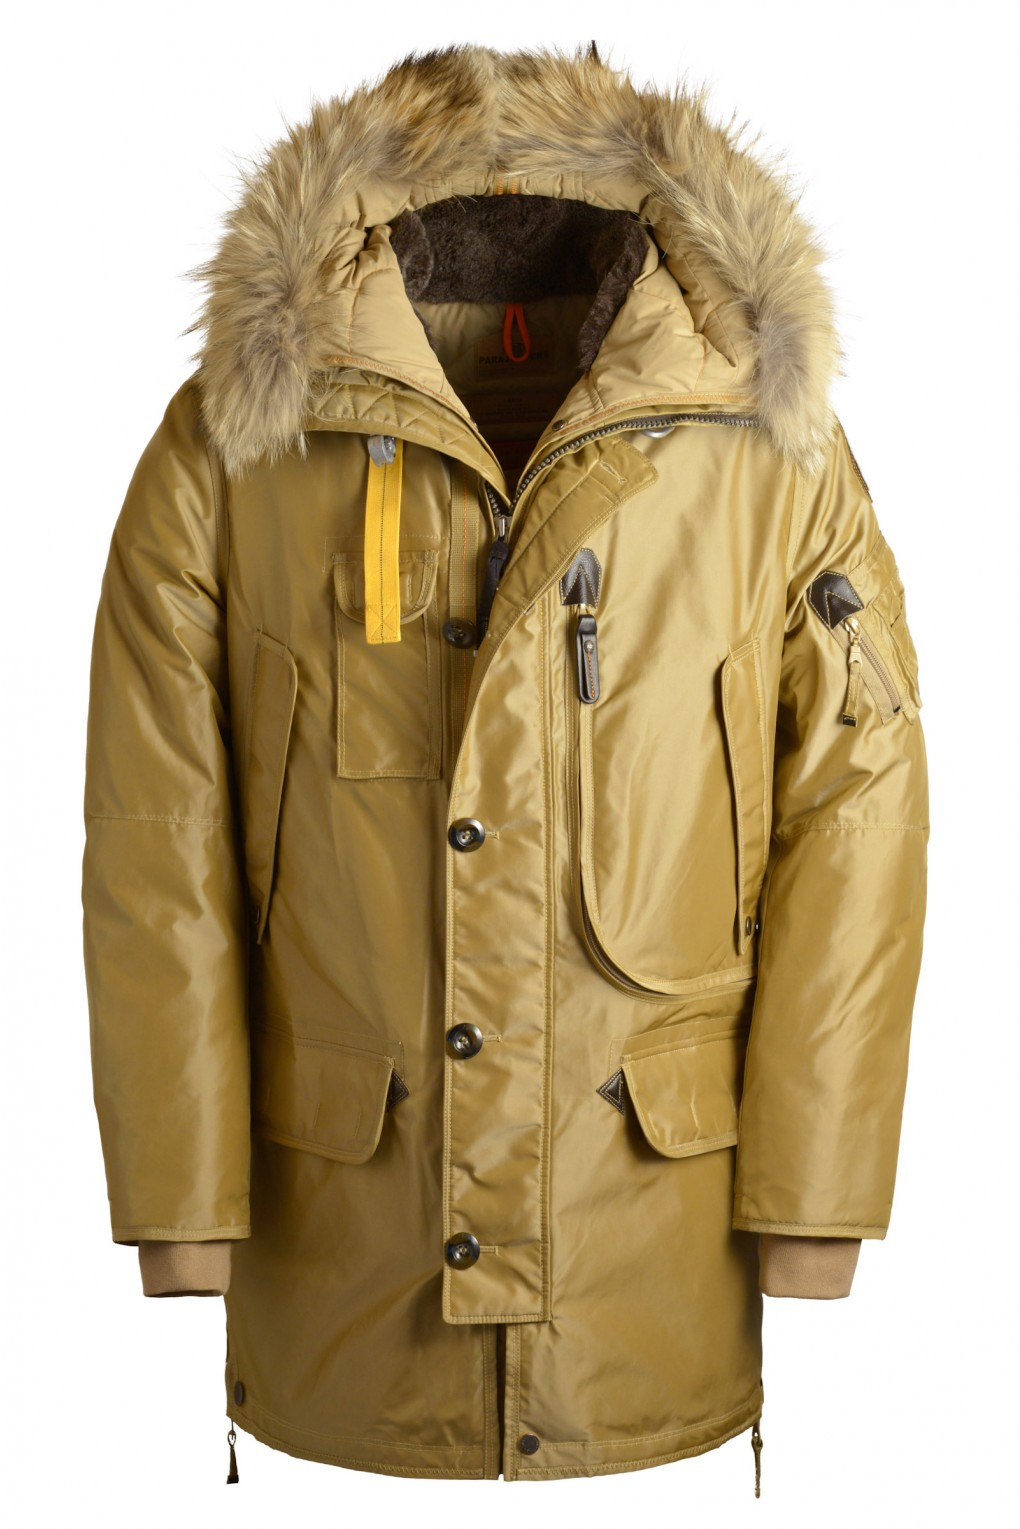 parajumpers KODIAK man outerwear Honey